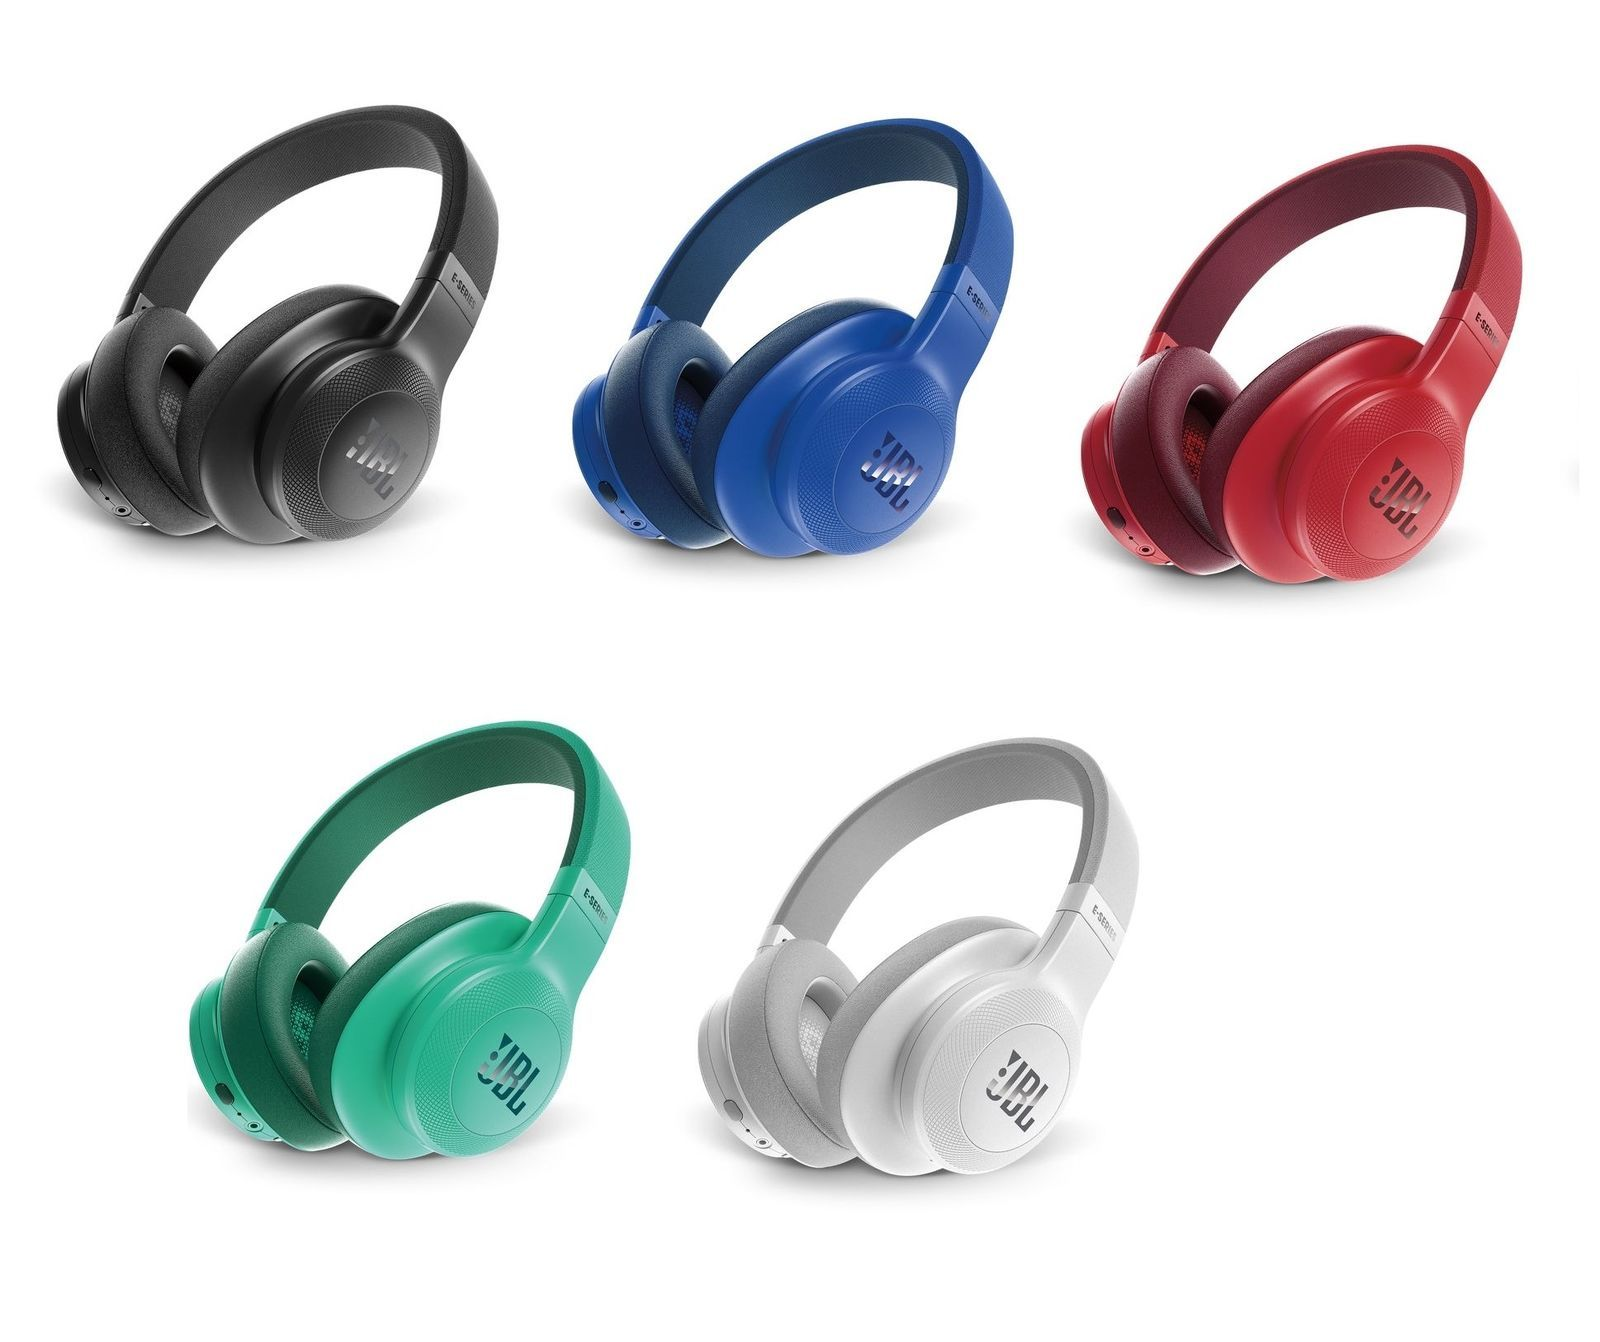 Details About Jbl E55bt Over Ear Wireless Bluetooth Headphones Bluetooth Headphones Wireless Headphones Bluetooth Headphones